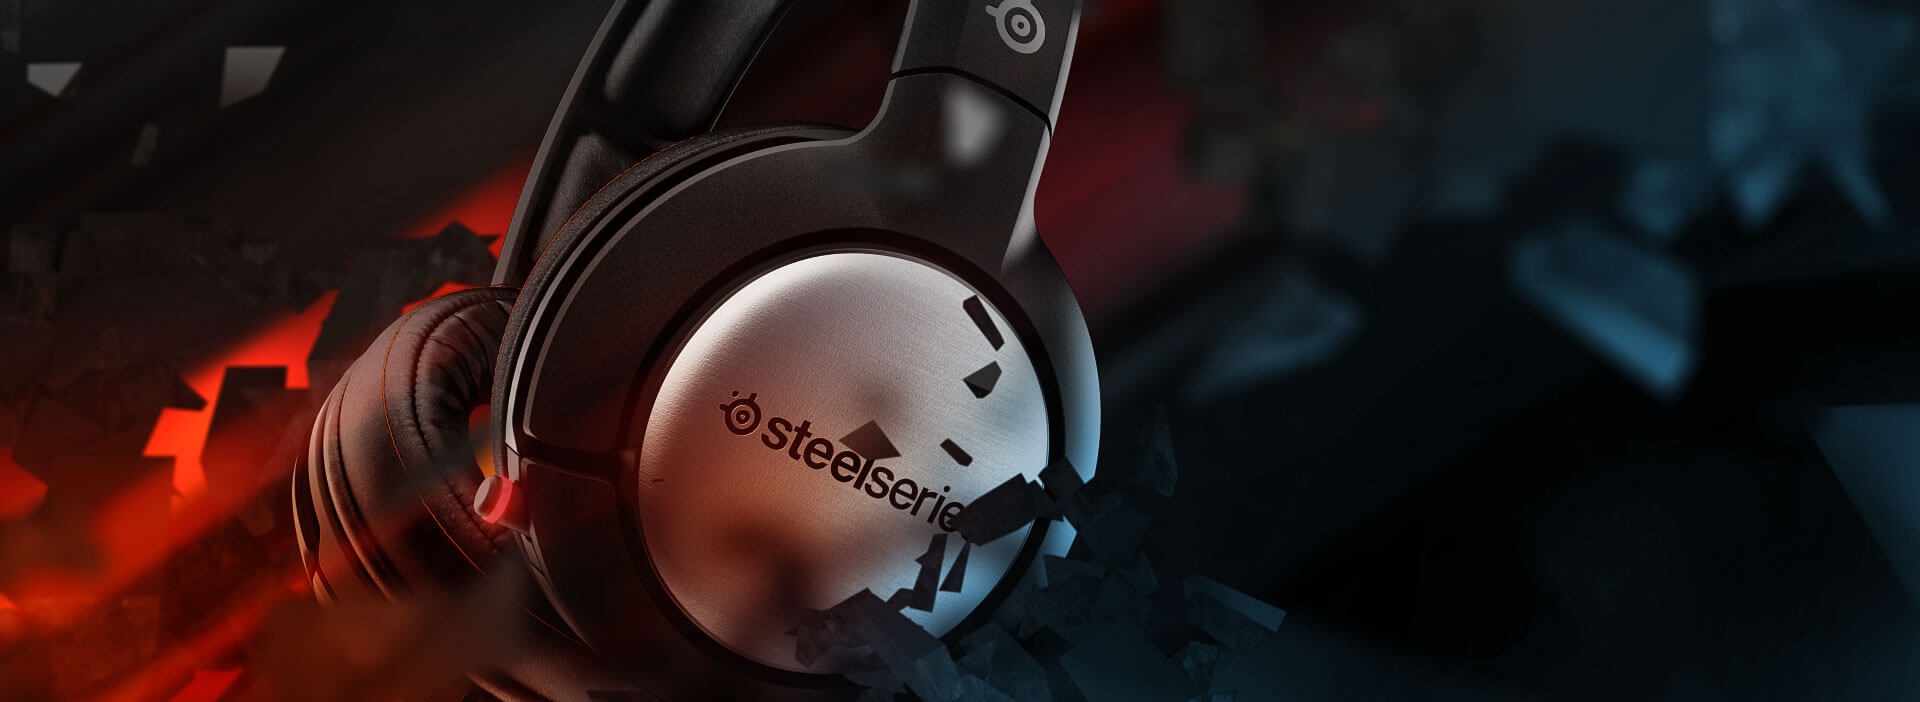 98afade06a6 The Siberia 840 is the perfect gaming headset. Armed with a lag-free  wireless connection, transmitter with OLED display, on-ear controls,  crystal clear mic ...